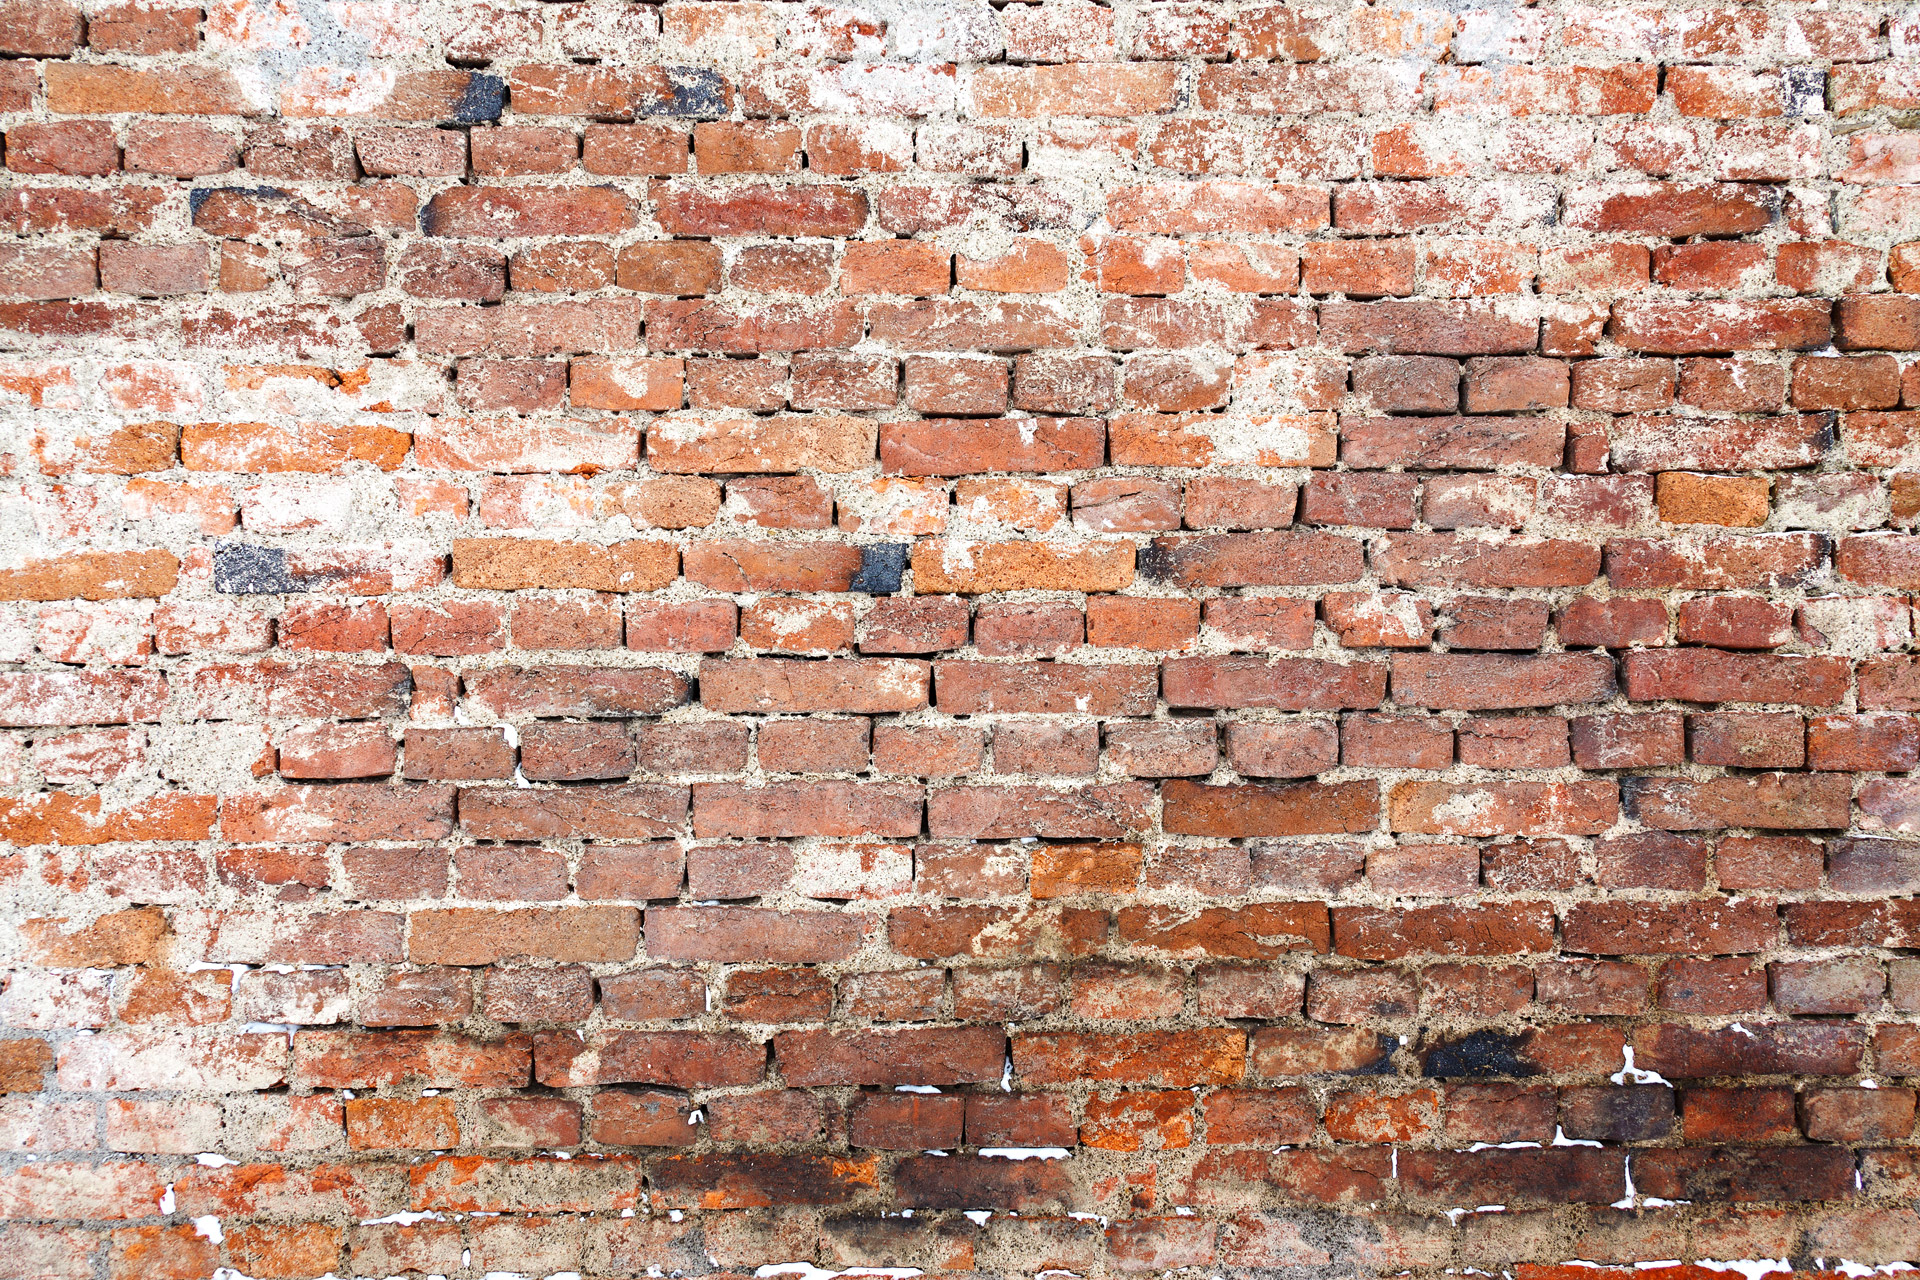 How To Add Brick To A Wall Old Brick Wall Free Stock Photo Public Domain Pictures